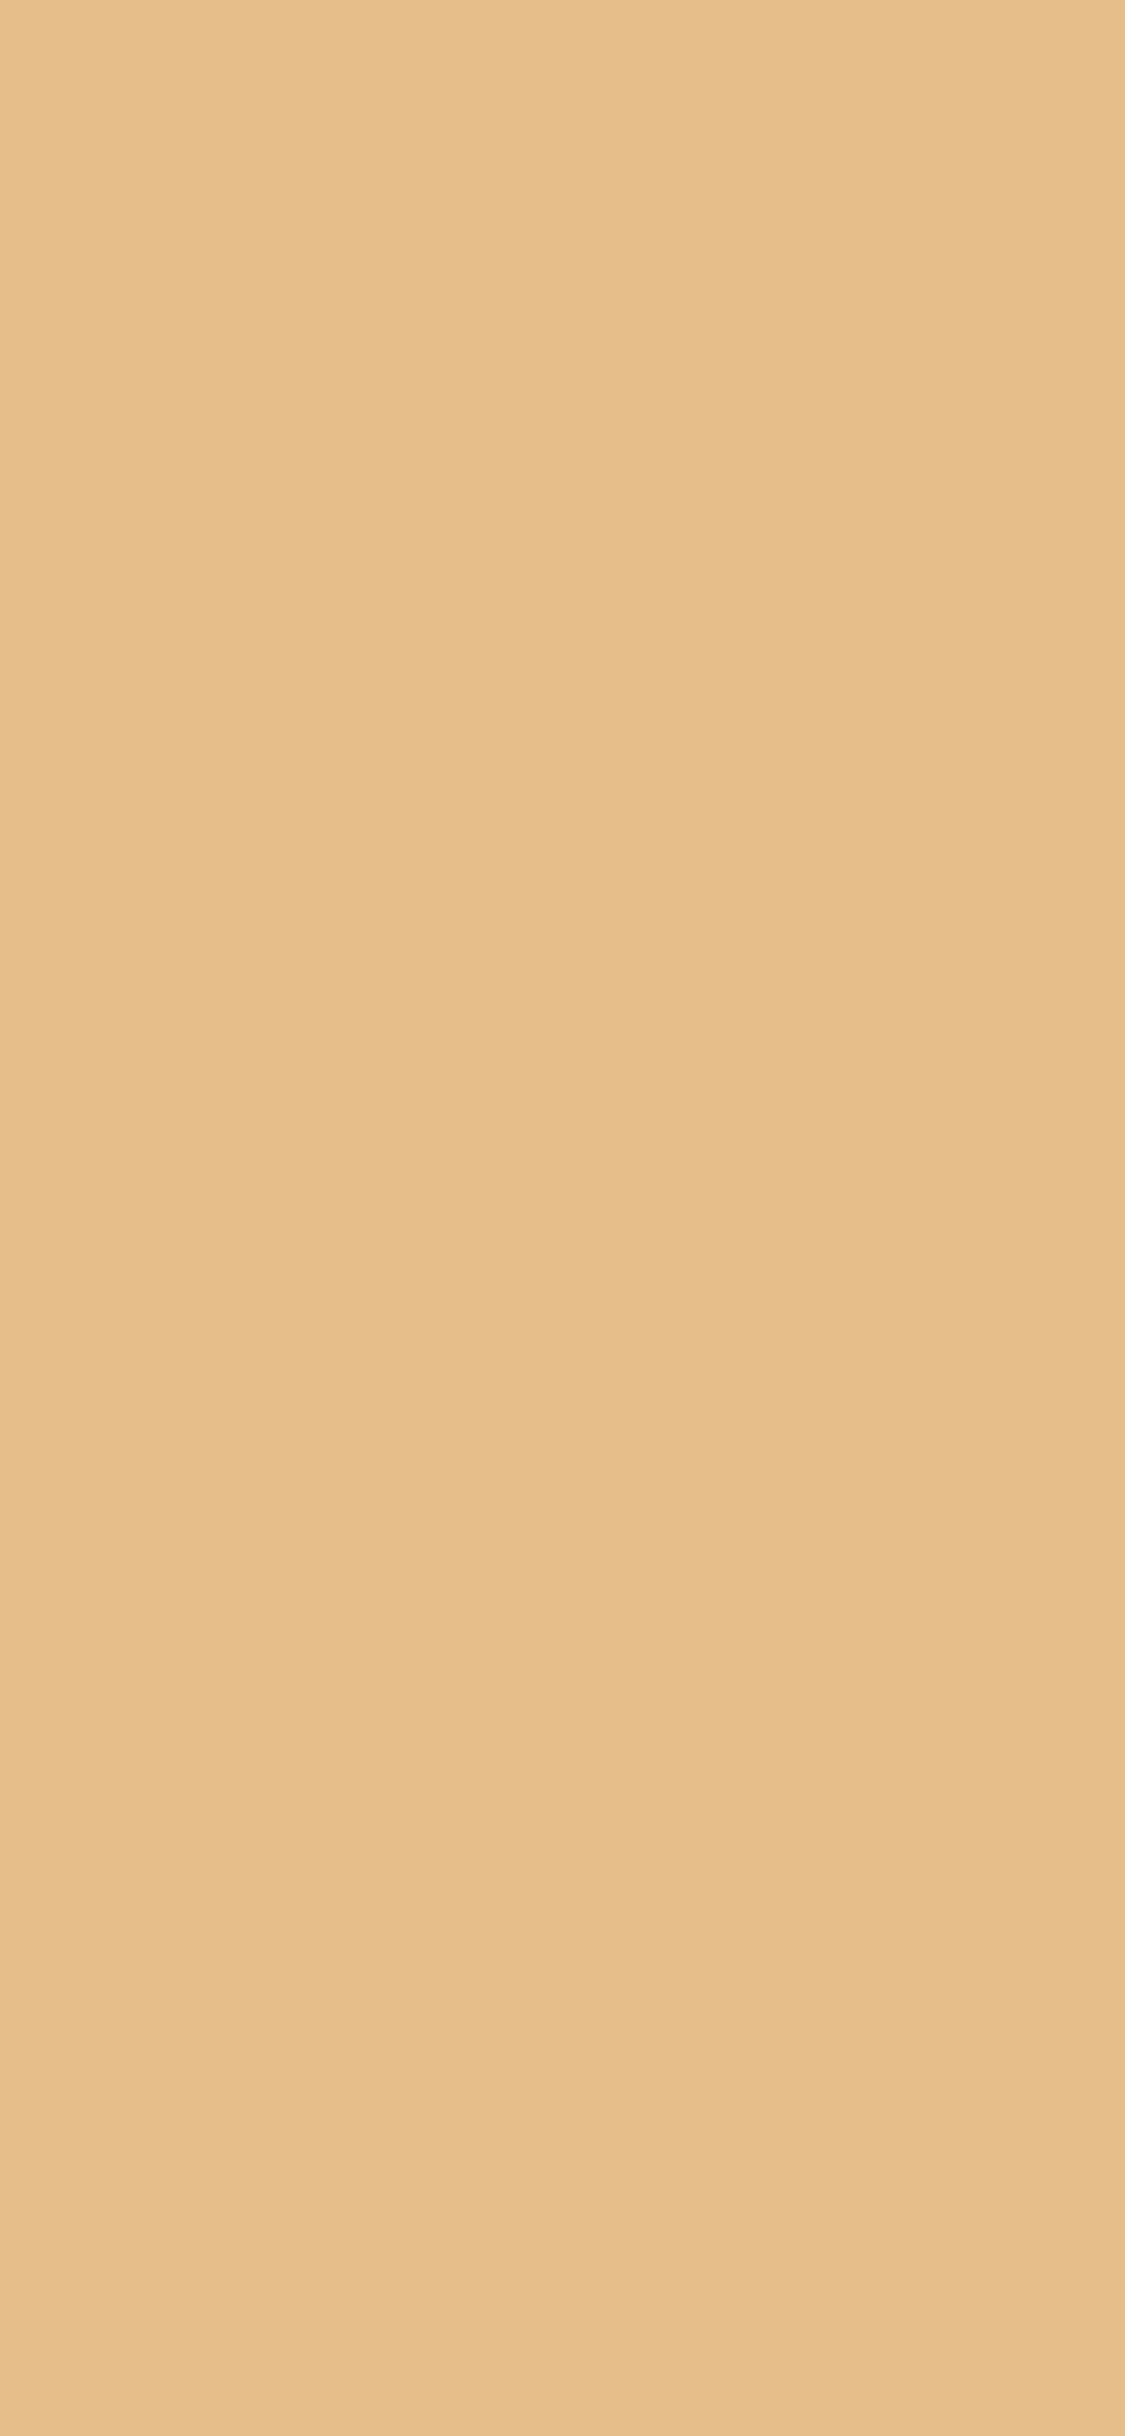 1125x2436 Pale Gold Solid Color Background